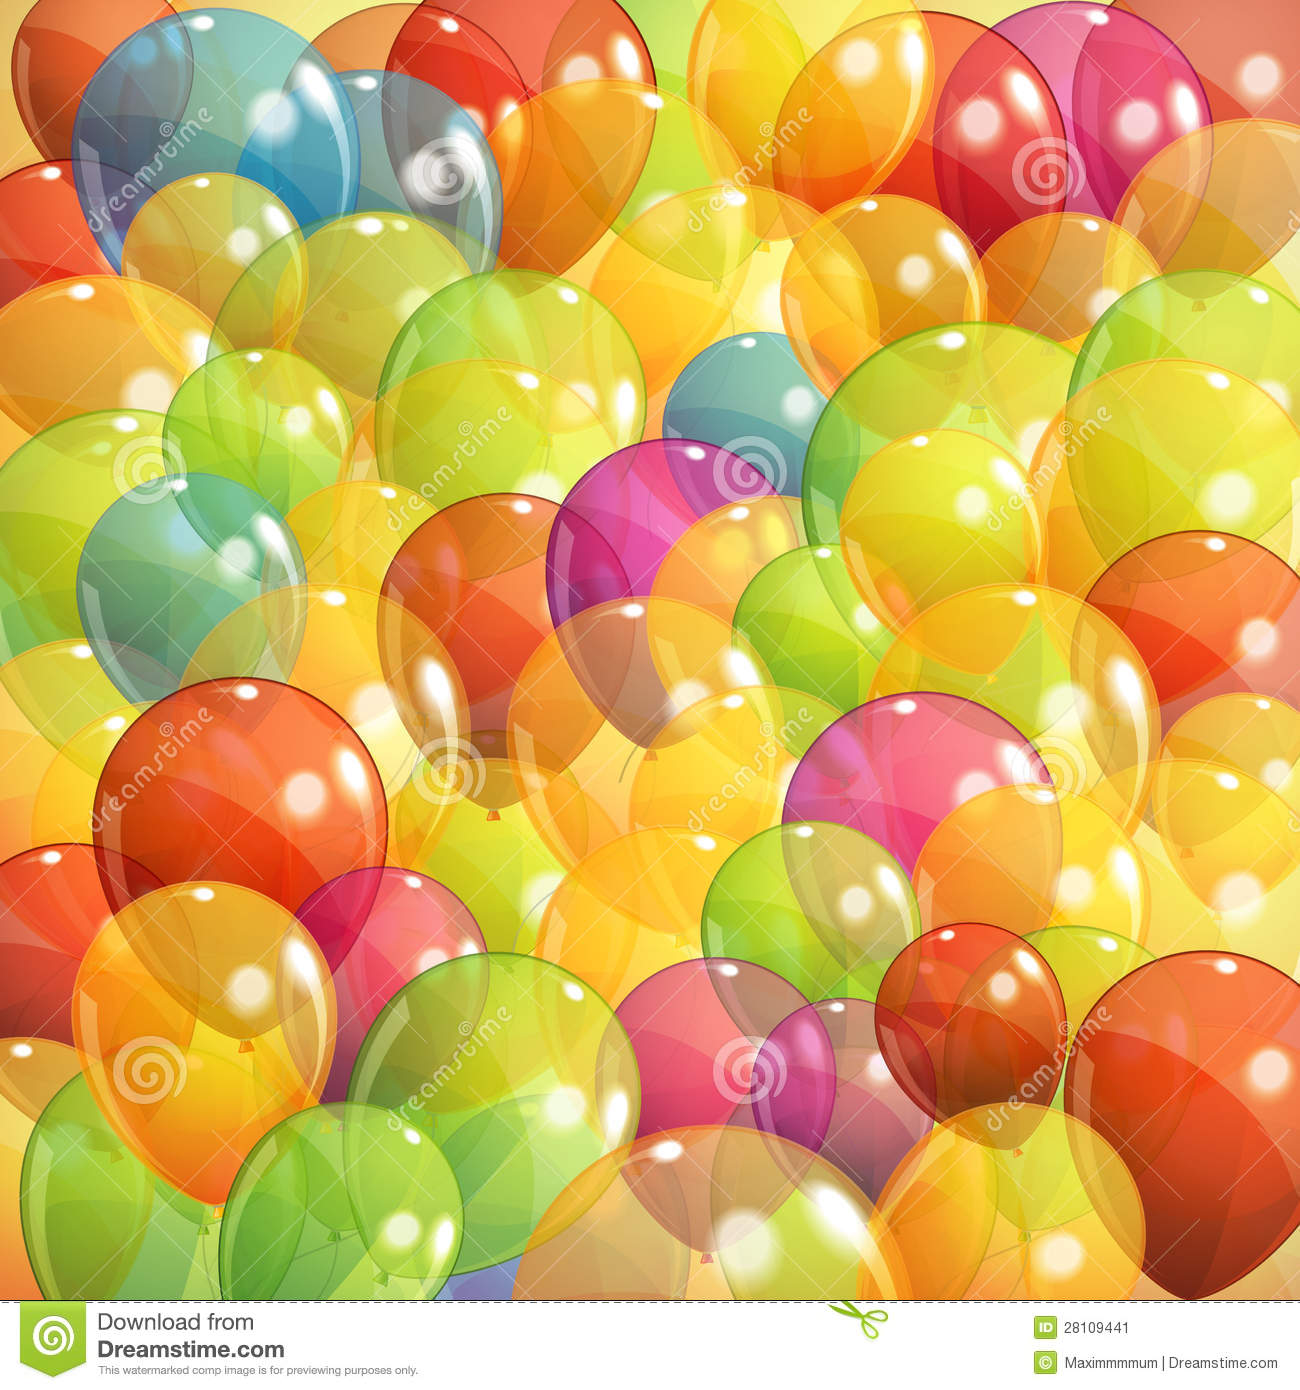 Background With Multicolored Transparent Balloons Stock